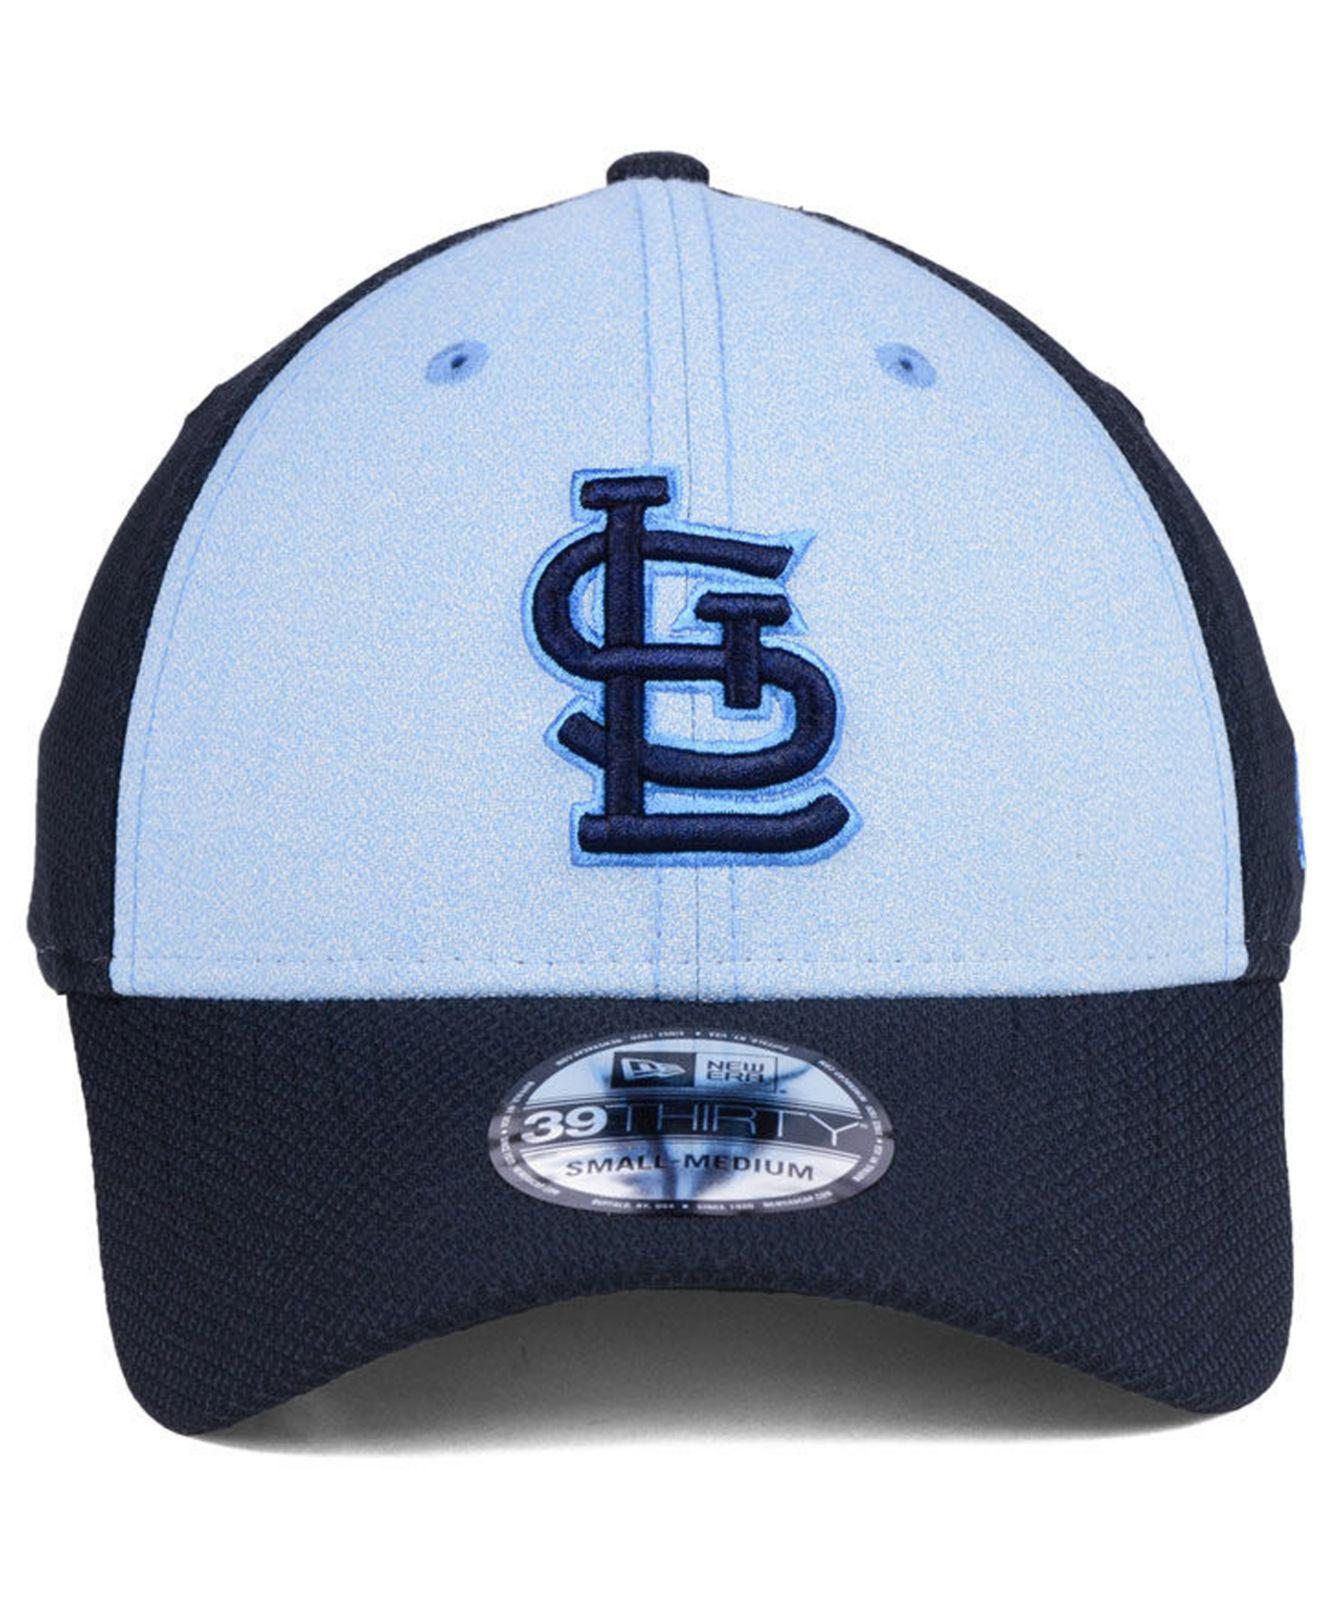 4dfa032ab9ce1 ... get lyst ktz st. louis cardinals fathers day 39thirty cap 2018 in 85f2b  64573